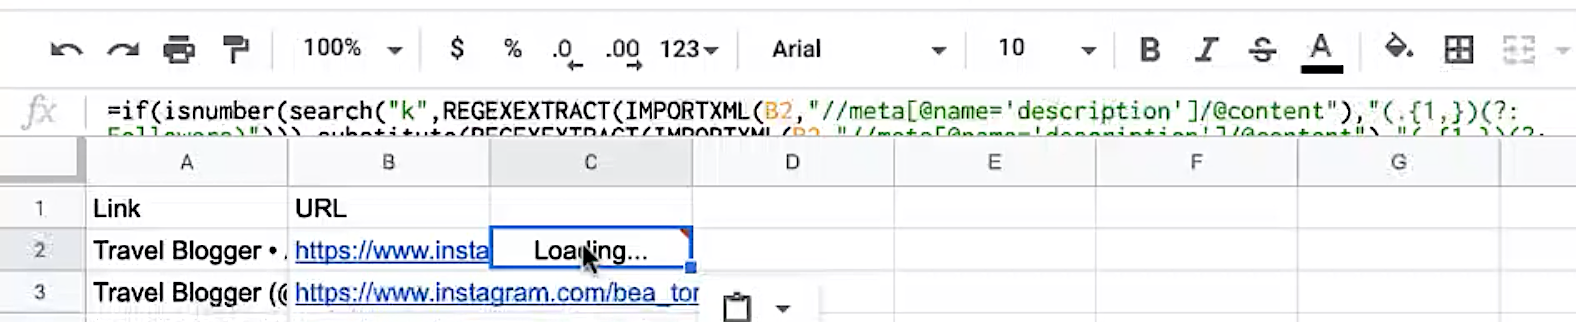 How to add function to google sheets.